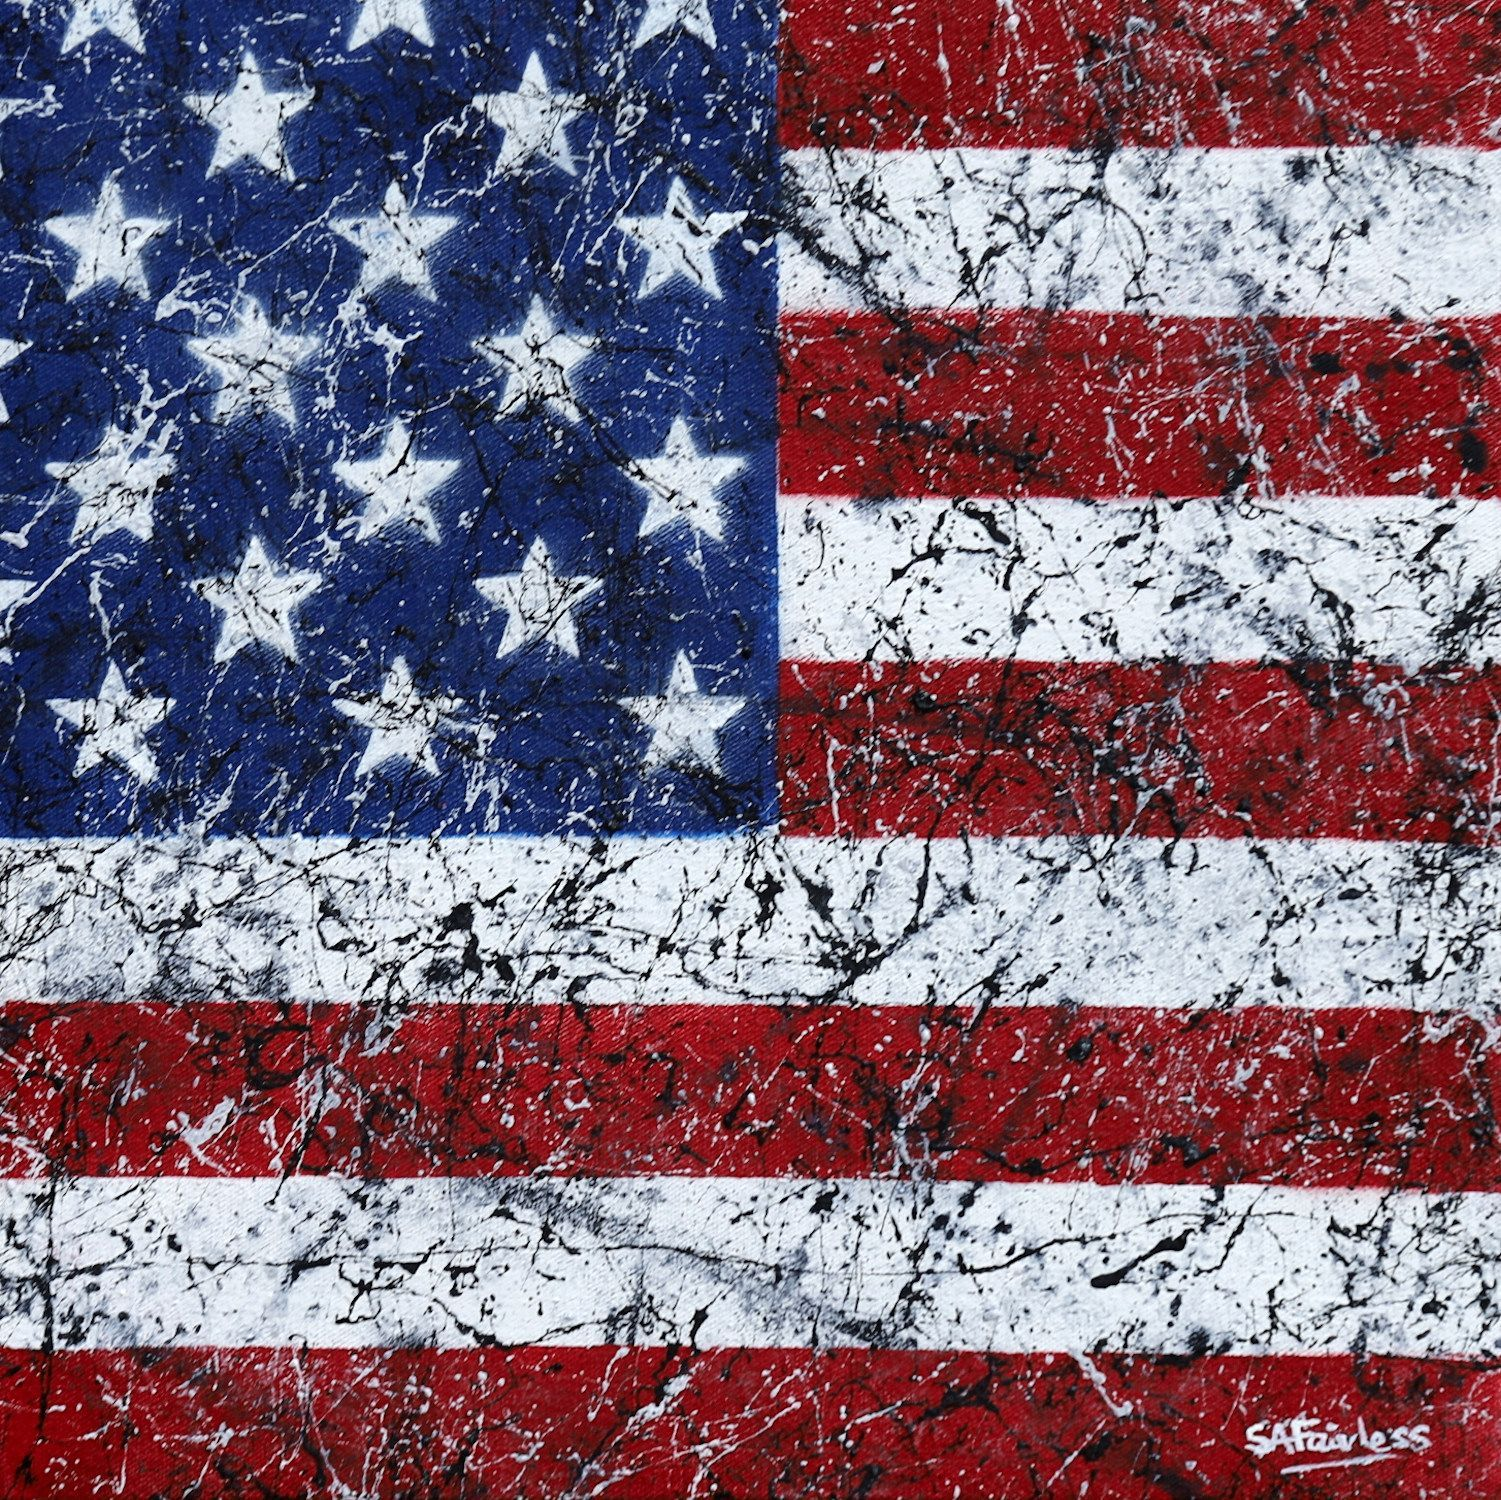 This American Flag Has Too Many Stars And Stripes Http Ift Tt 2e3mxhl American Flag Flag Stripes